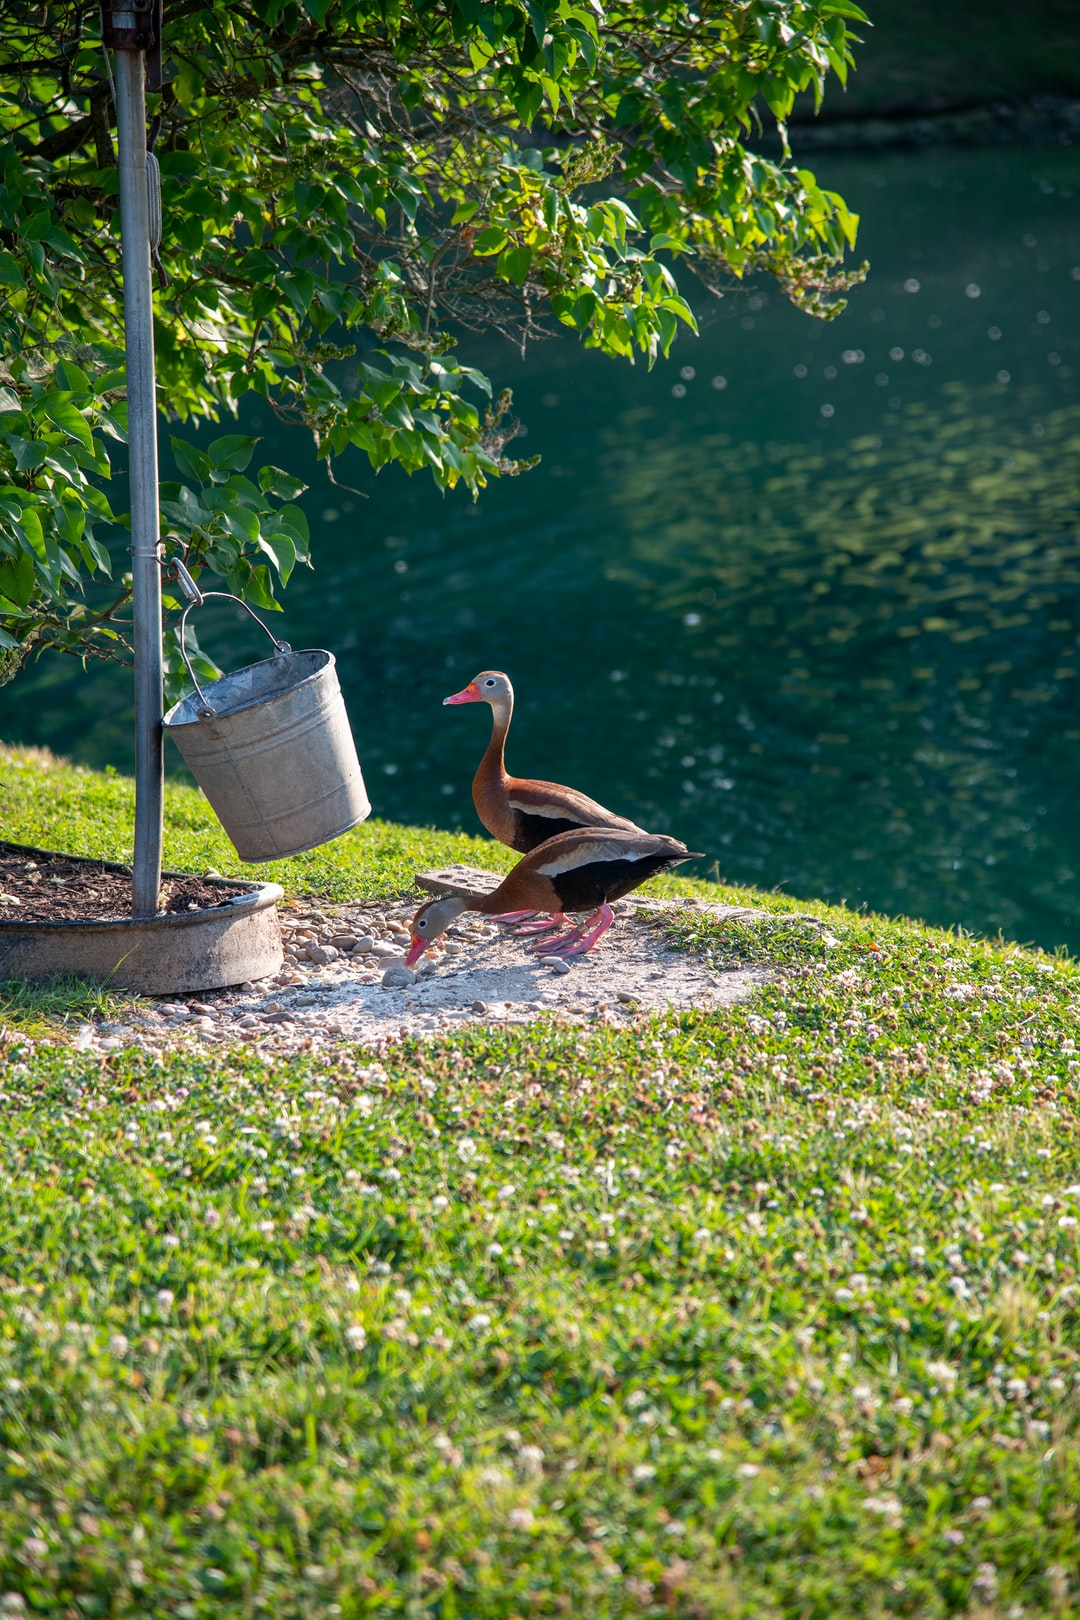 Black-bellied Whistling Ducks by feed bucket at lake.